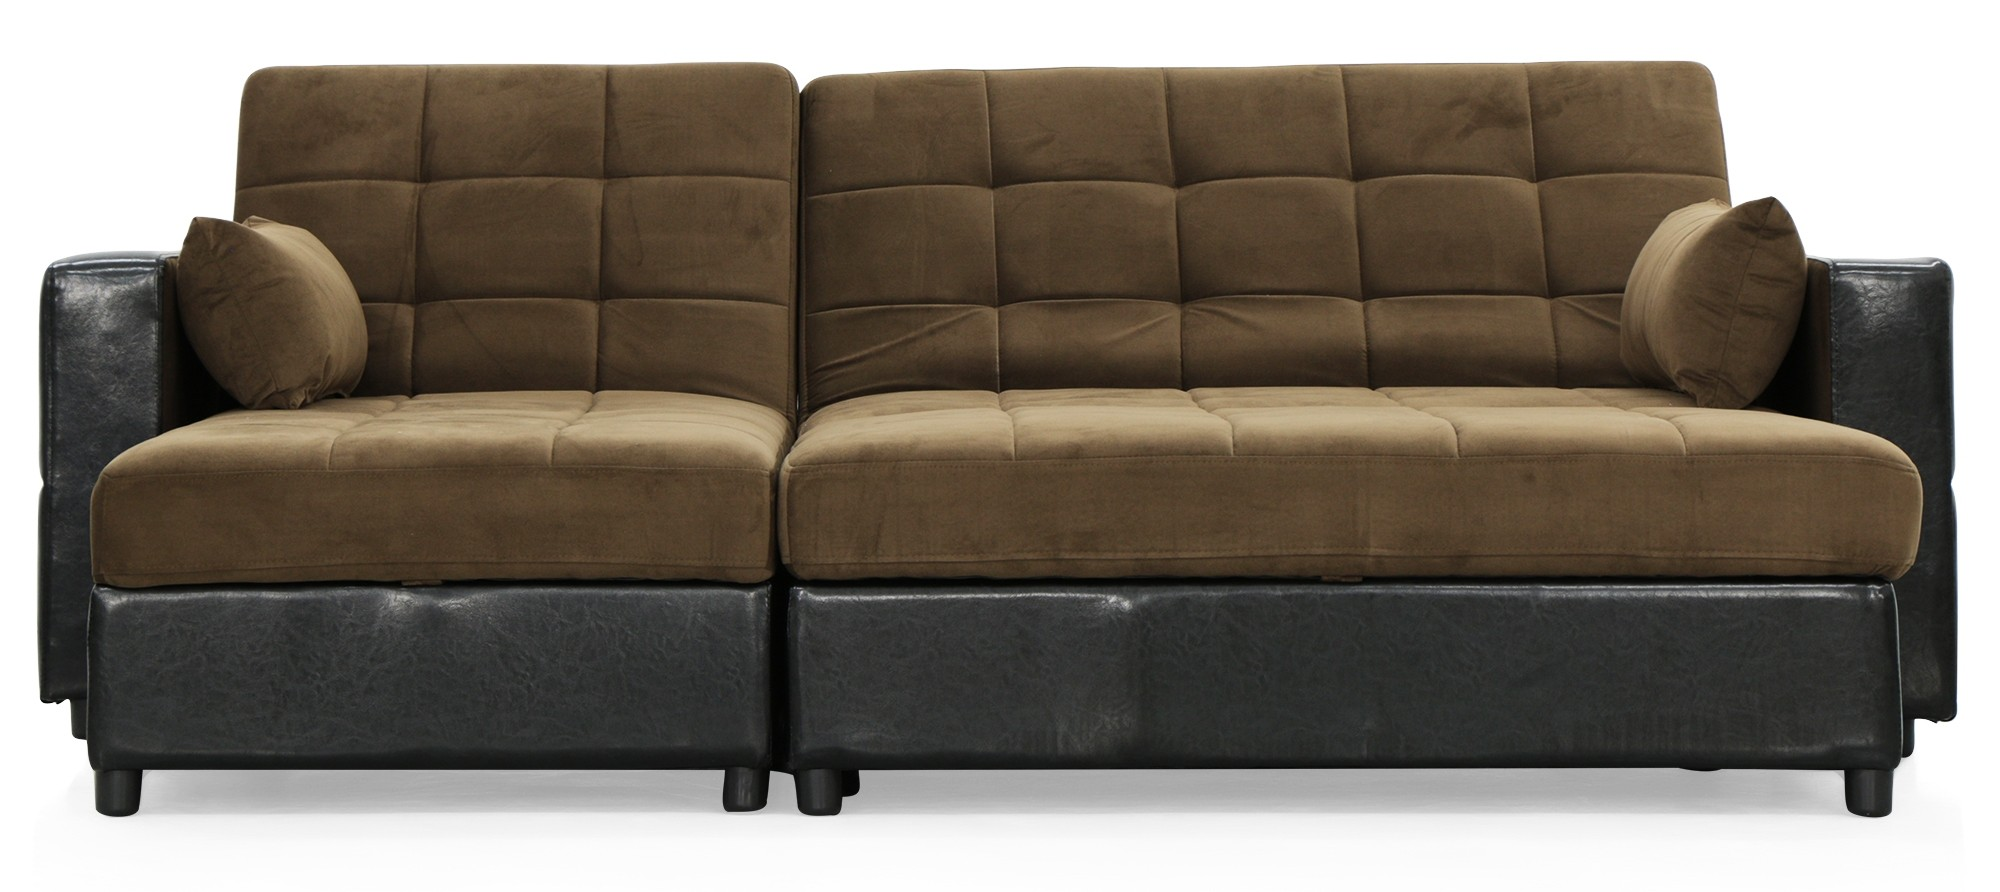 Albert Multi Storage Sofa Bed Fabric